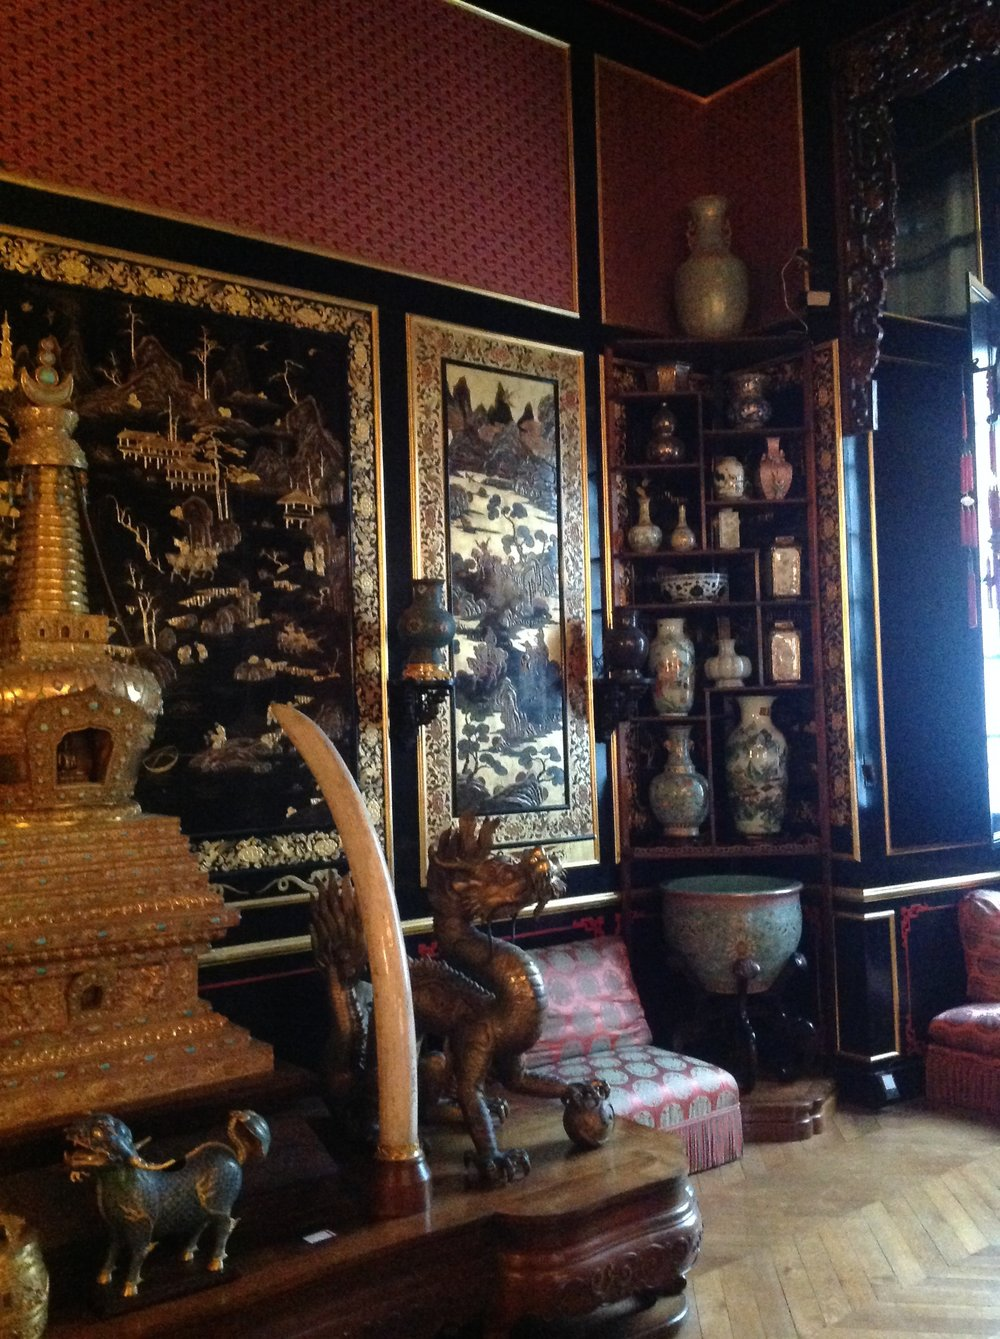 The Chinese Museum at Chateau de Fontainebleau, established by Empress Eugenie in 1867.